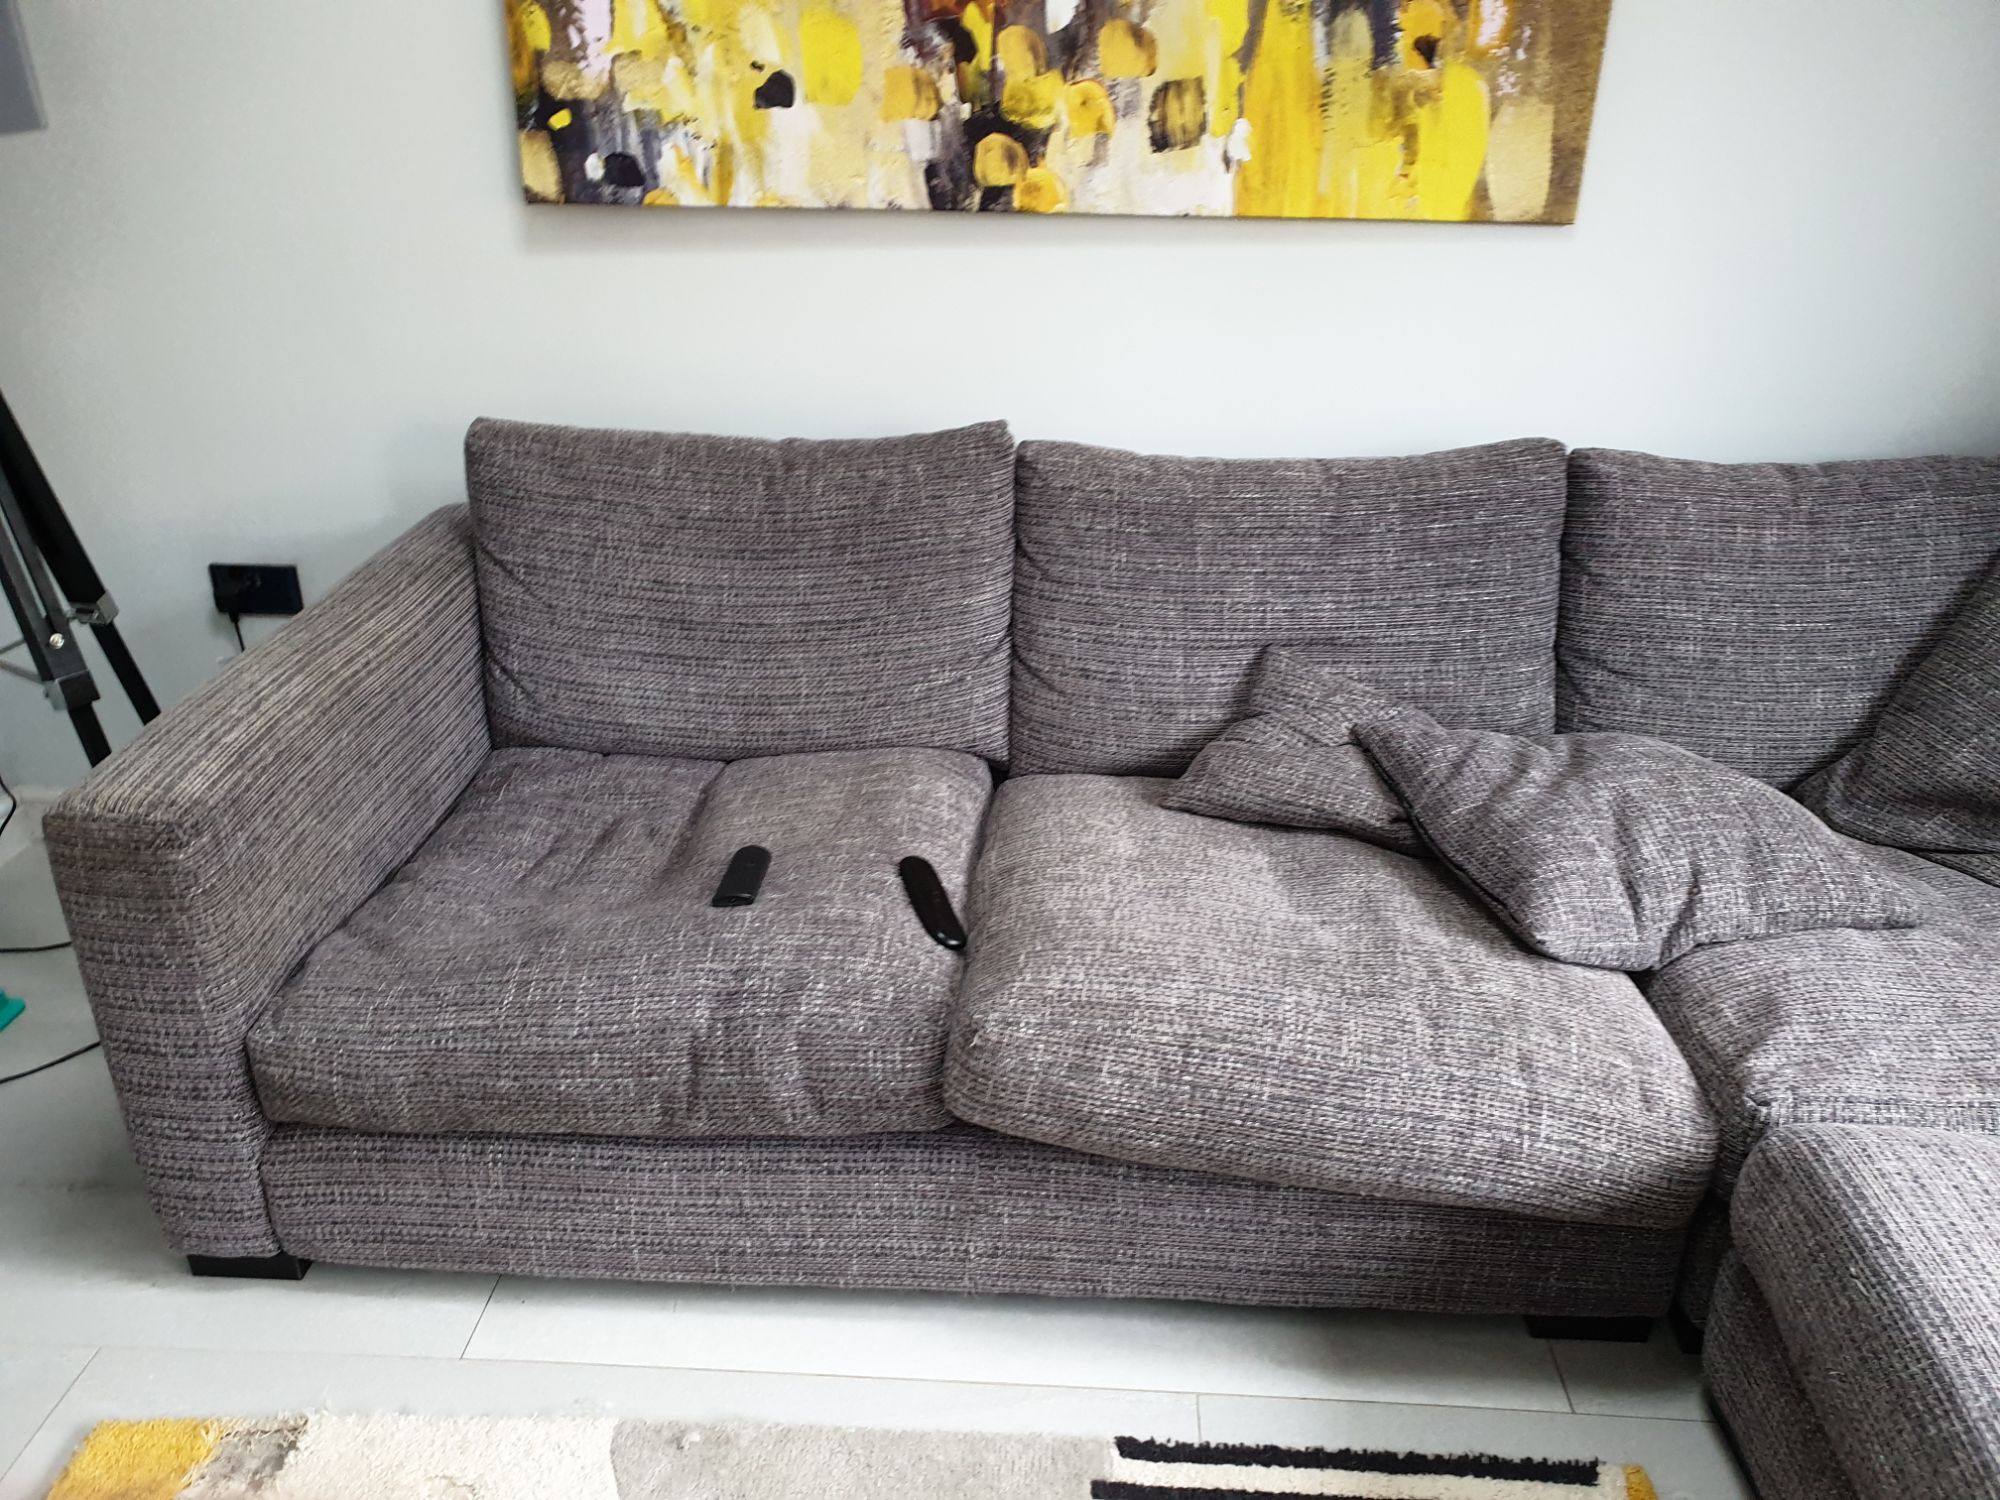 soiled by dog sofa prior to upholstery cleaning.jpg